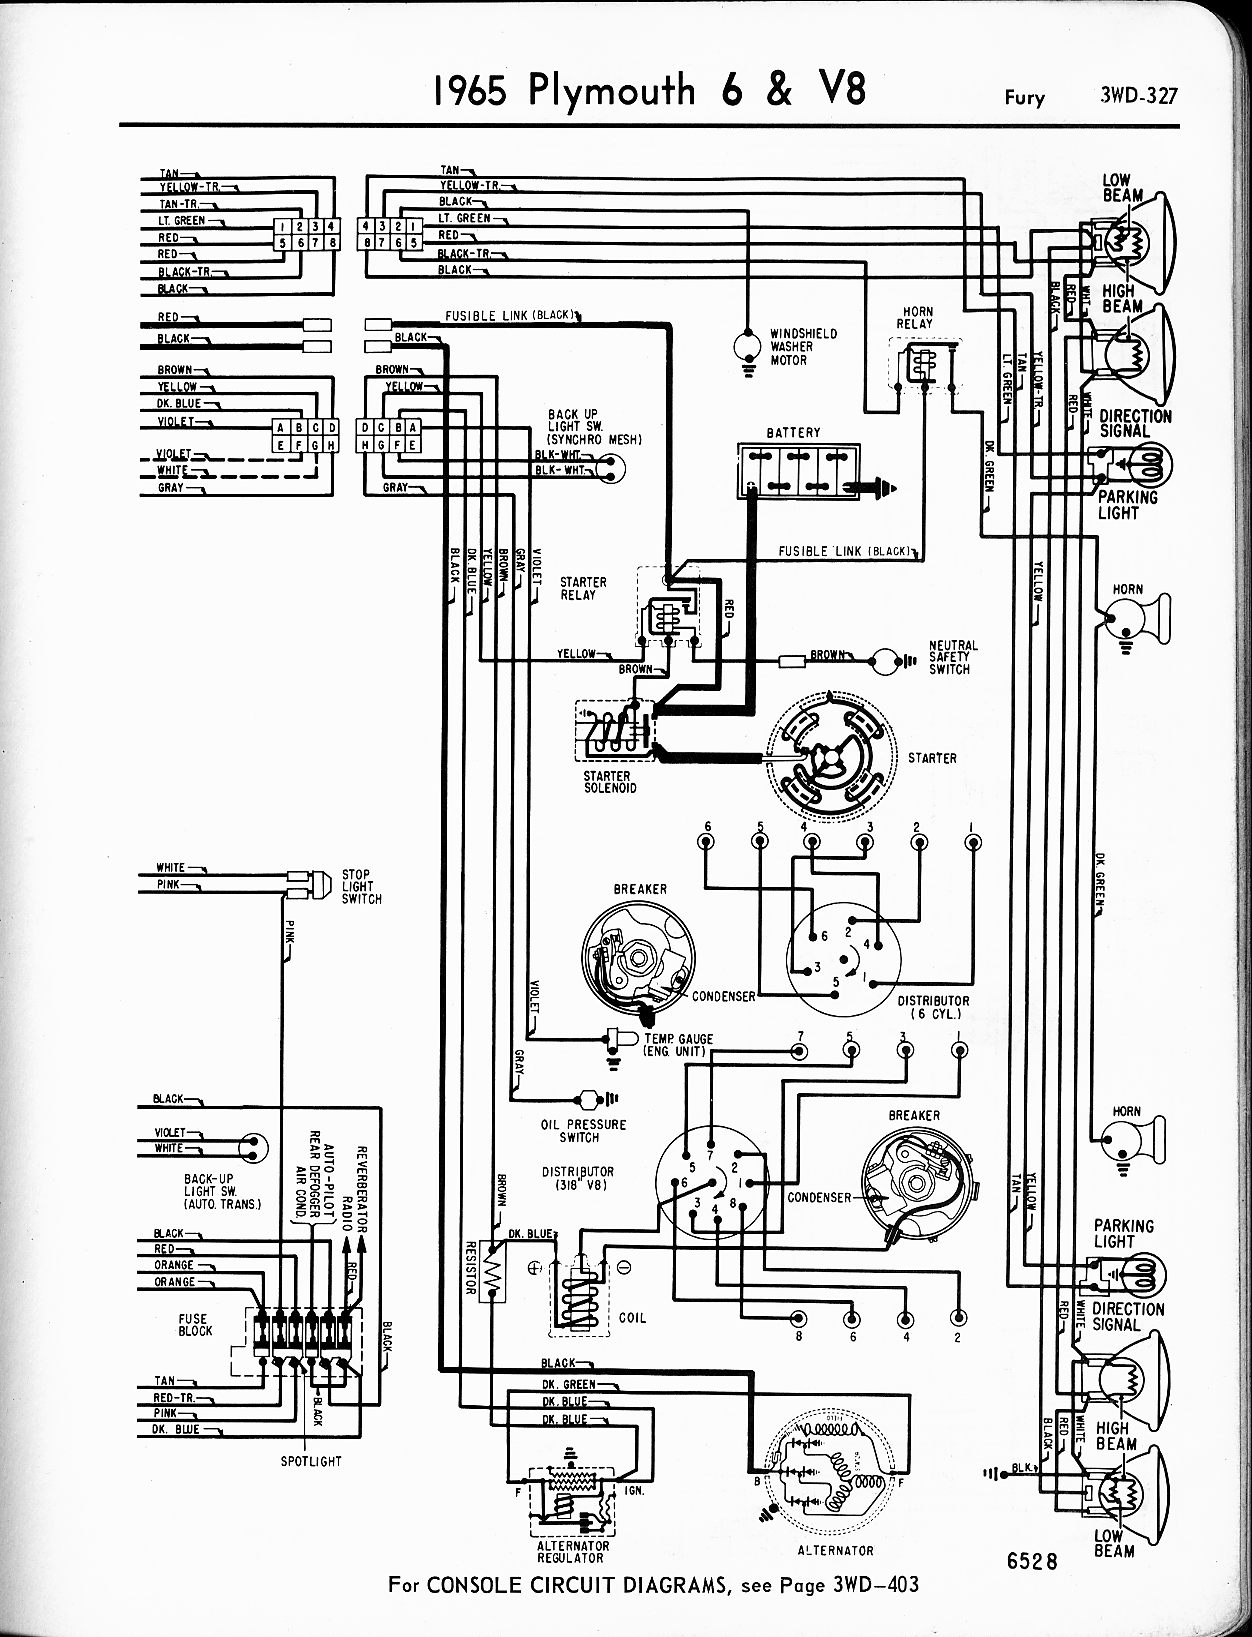 hid wiring diagram for dodge ram best wiring library 1998 GMC Sierra Electrical Schematics 1955 plymouth belvedere wiring diagram wiring diagram online 2004 dodge ram 2500 hid installation 1955 dodge